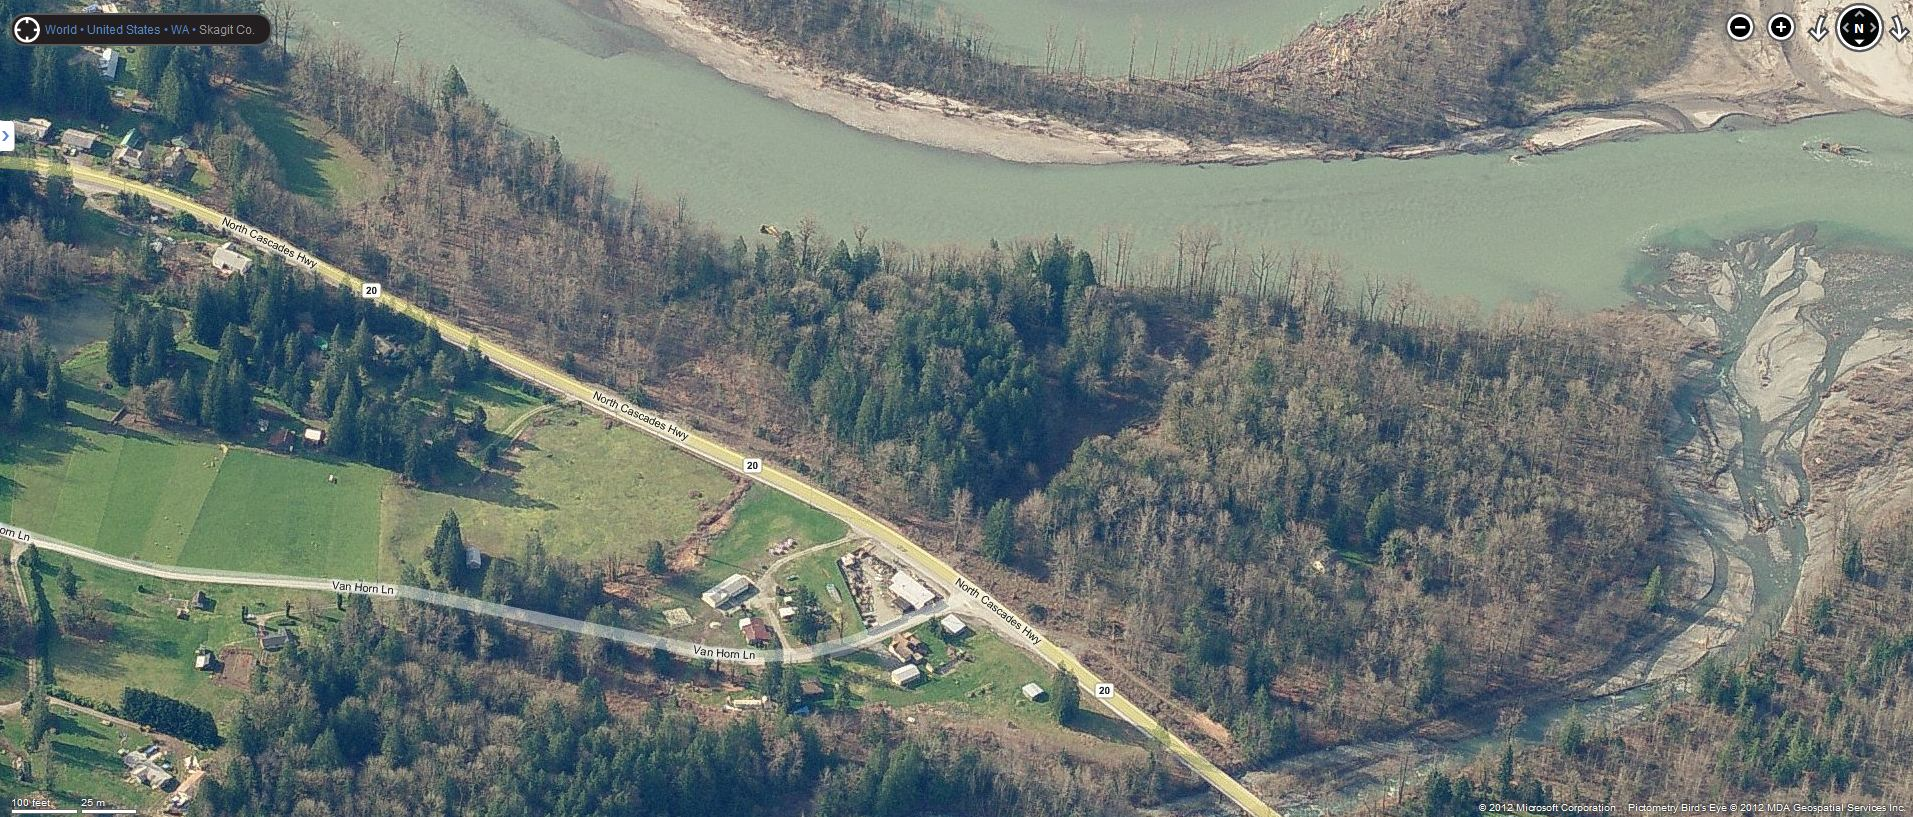 Aerial image of the confluence of Jackman Creek with the Skagit River. Credit unknown.